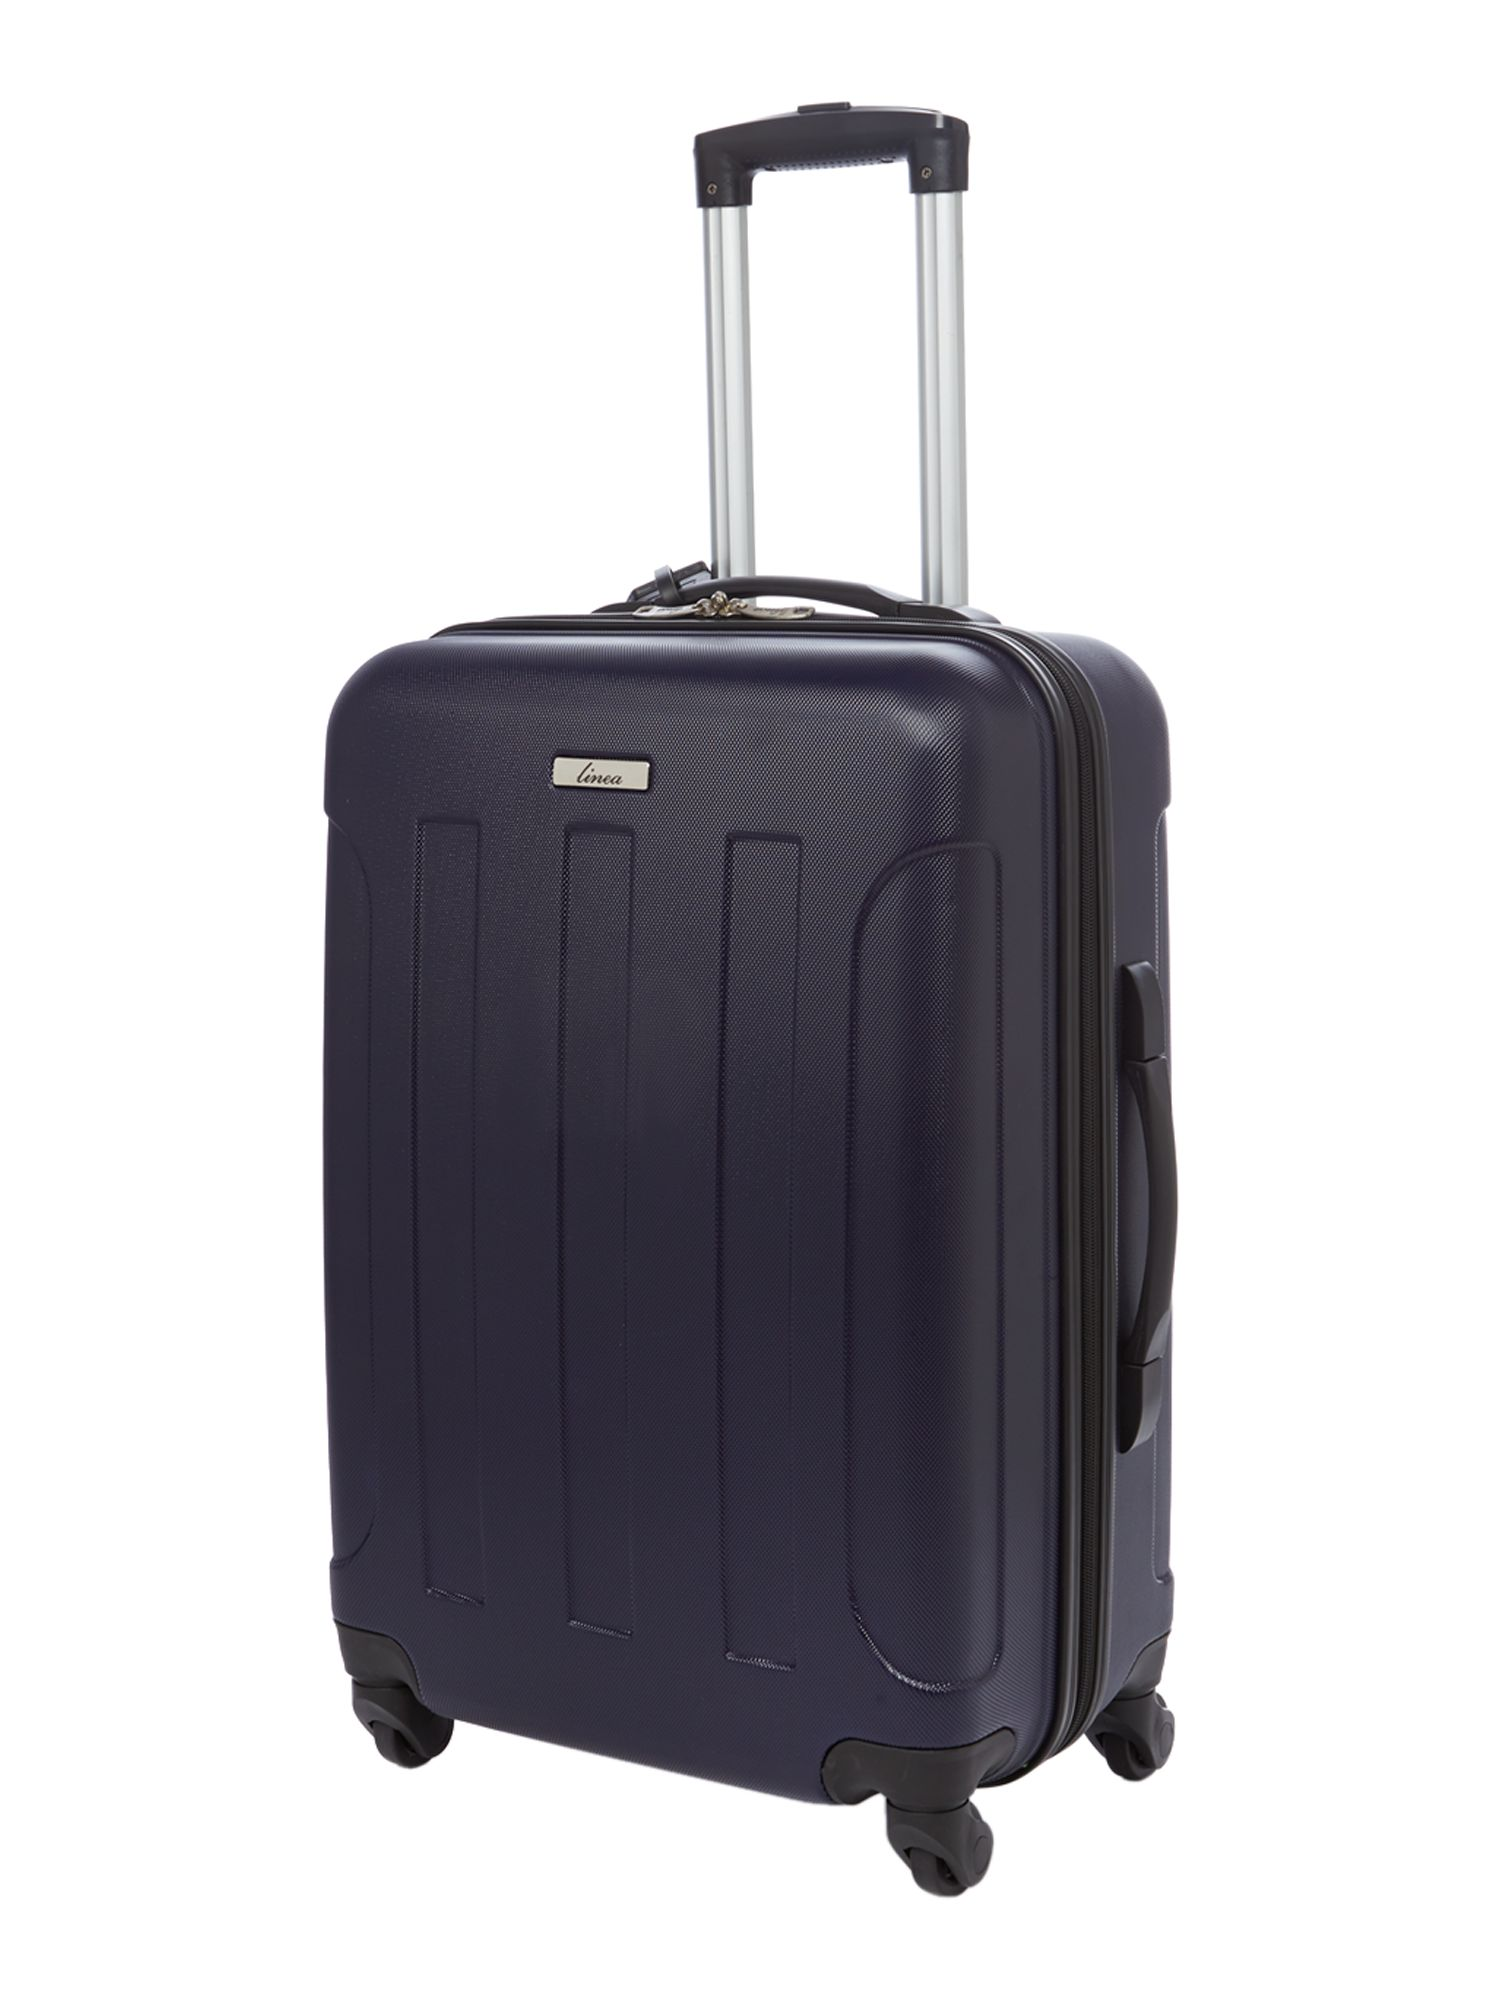 Dakota navy luggage range